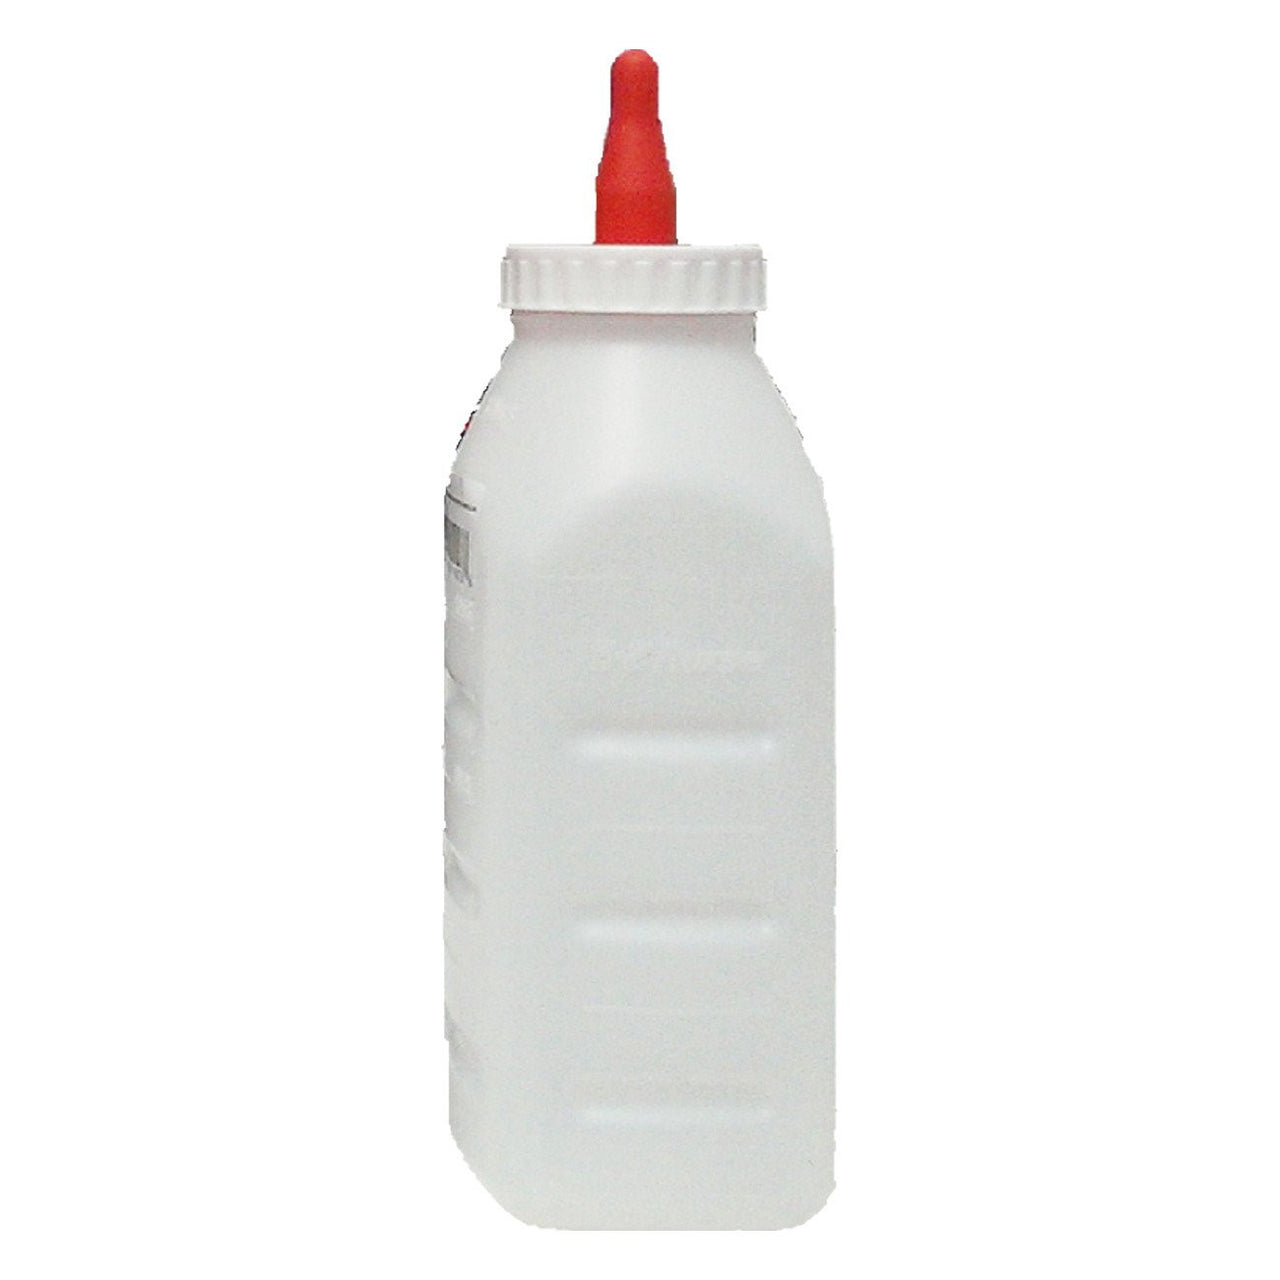 Cattle Boss Lamb Bottle Screw Nipple (Included) 2L - Nursing Weaning And Fluid Feeding Cattle Boss - Canada